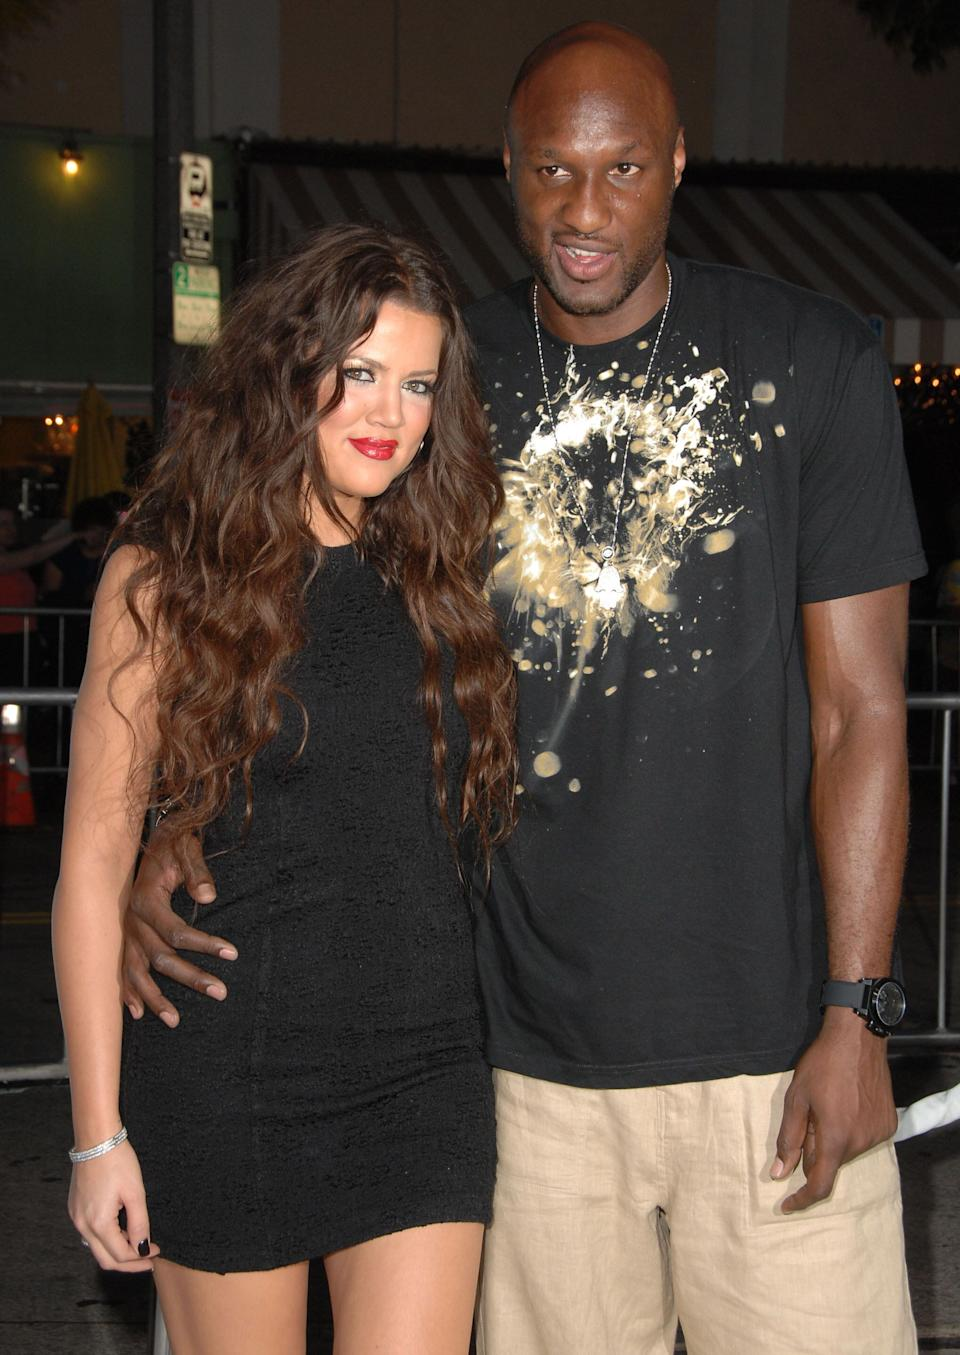 """Khloé Kardashian and """"Lammy"""" when they were hot a new couple — before he cheated on her countless times. (Photo: Steve Granitz/WireImage)"""